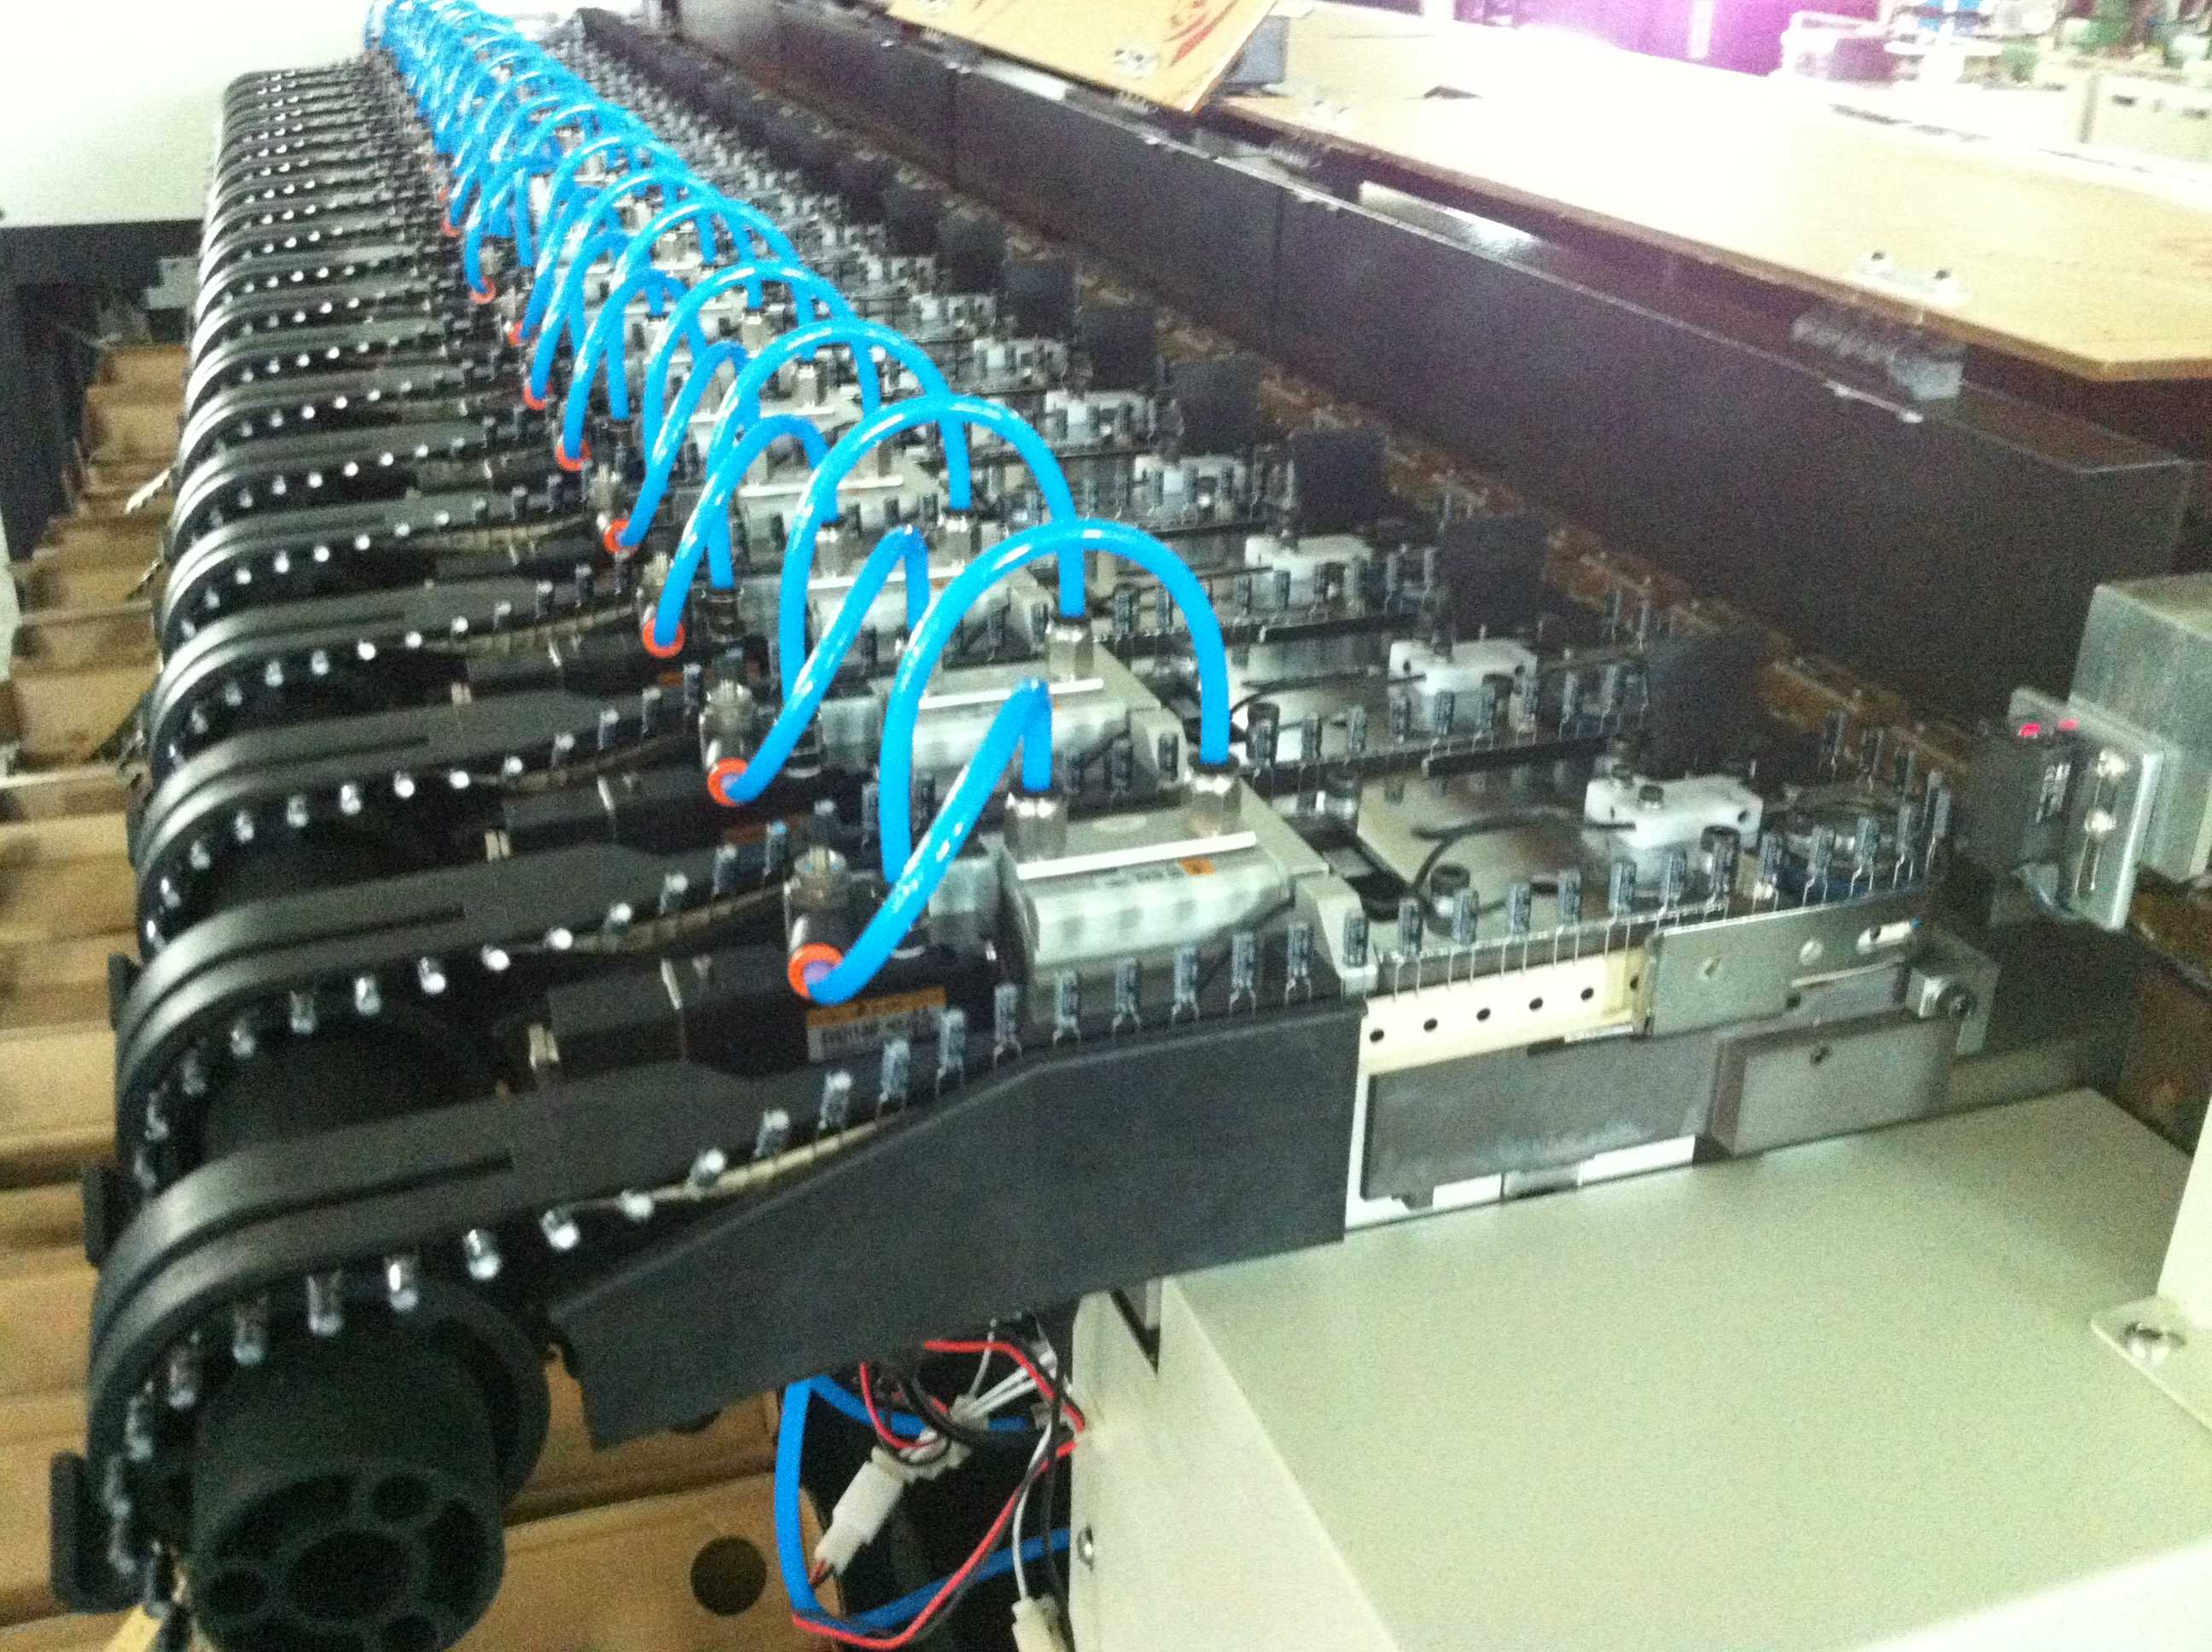 SMT,Surface Mount Technology,AI, Auto Insertion,THT,Through Hole Technology,PCBA, PCB assembly, PCB - printed circuit board,IM,Insertion Mount,SMT nozzle,SMT feeder,AI spare parts,PCB handling system,Pick and place machine,Solder paste Screen printer ,Reflow oven,Radial insertion machine,Odd form Insertion machine